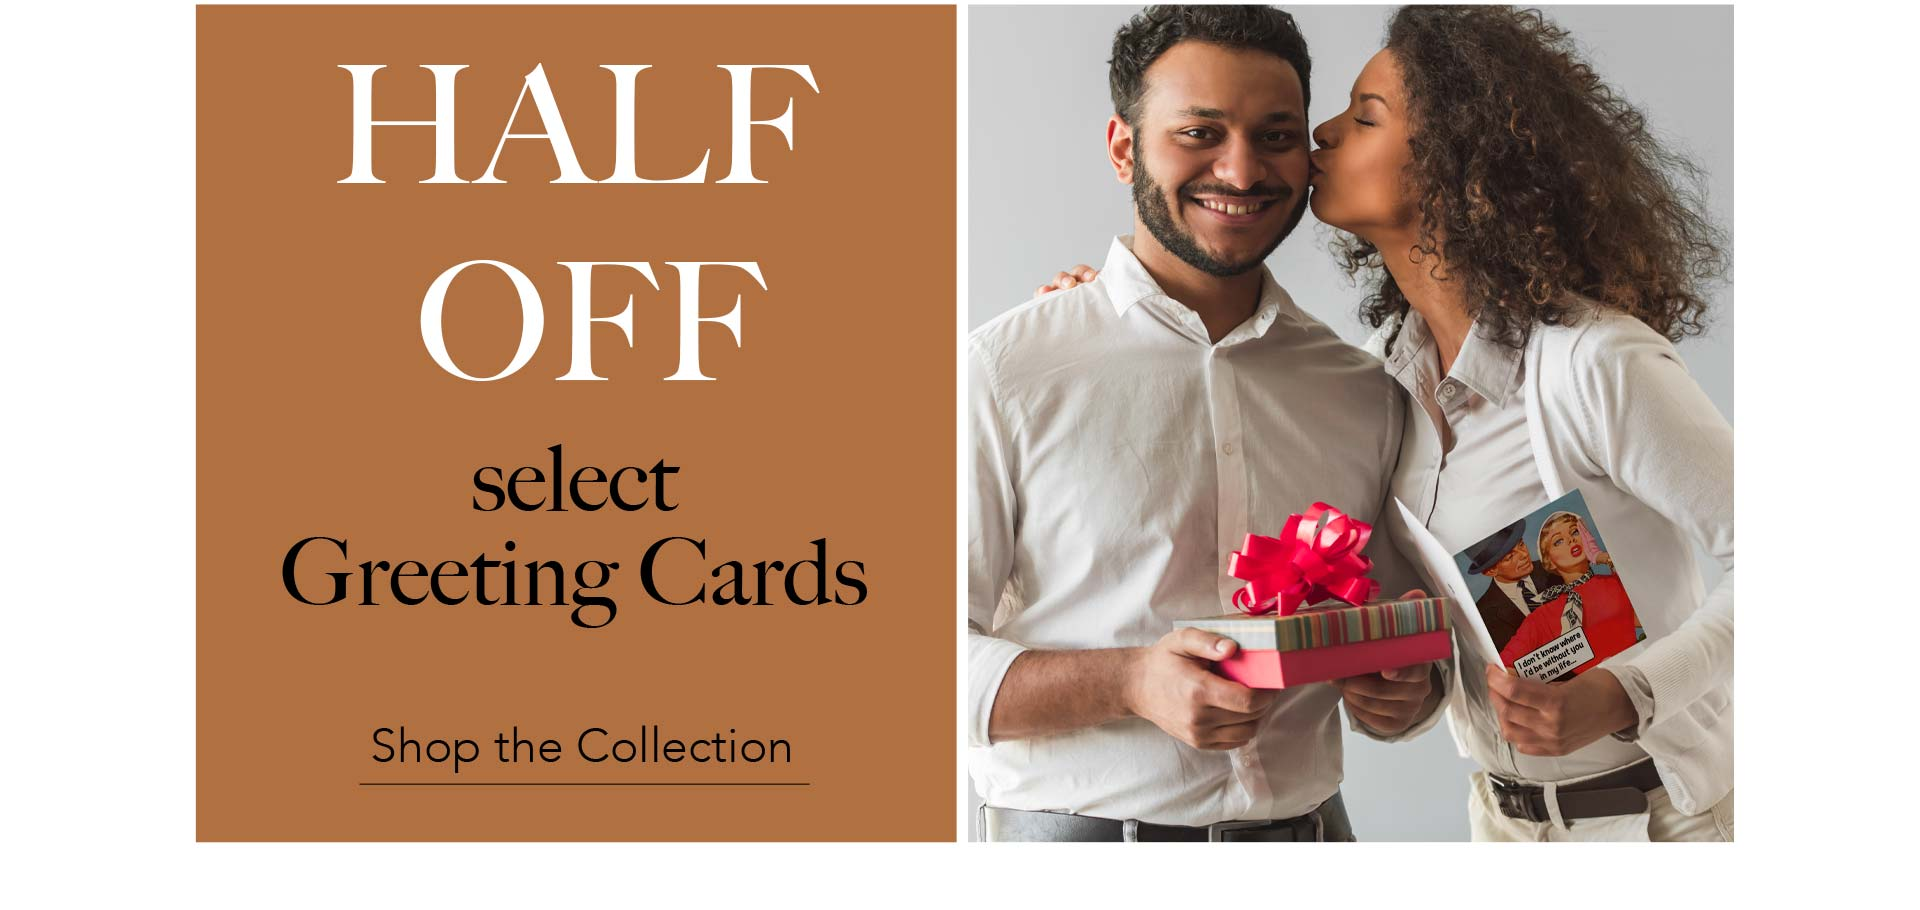 Half off select Greeting Cards - Shop the Collection